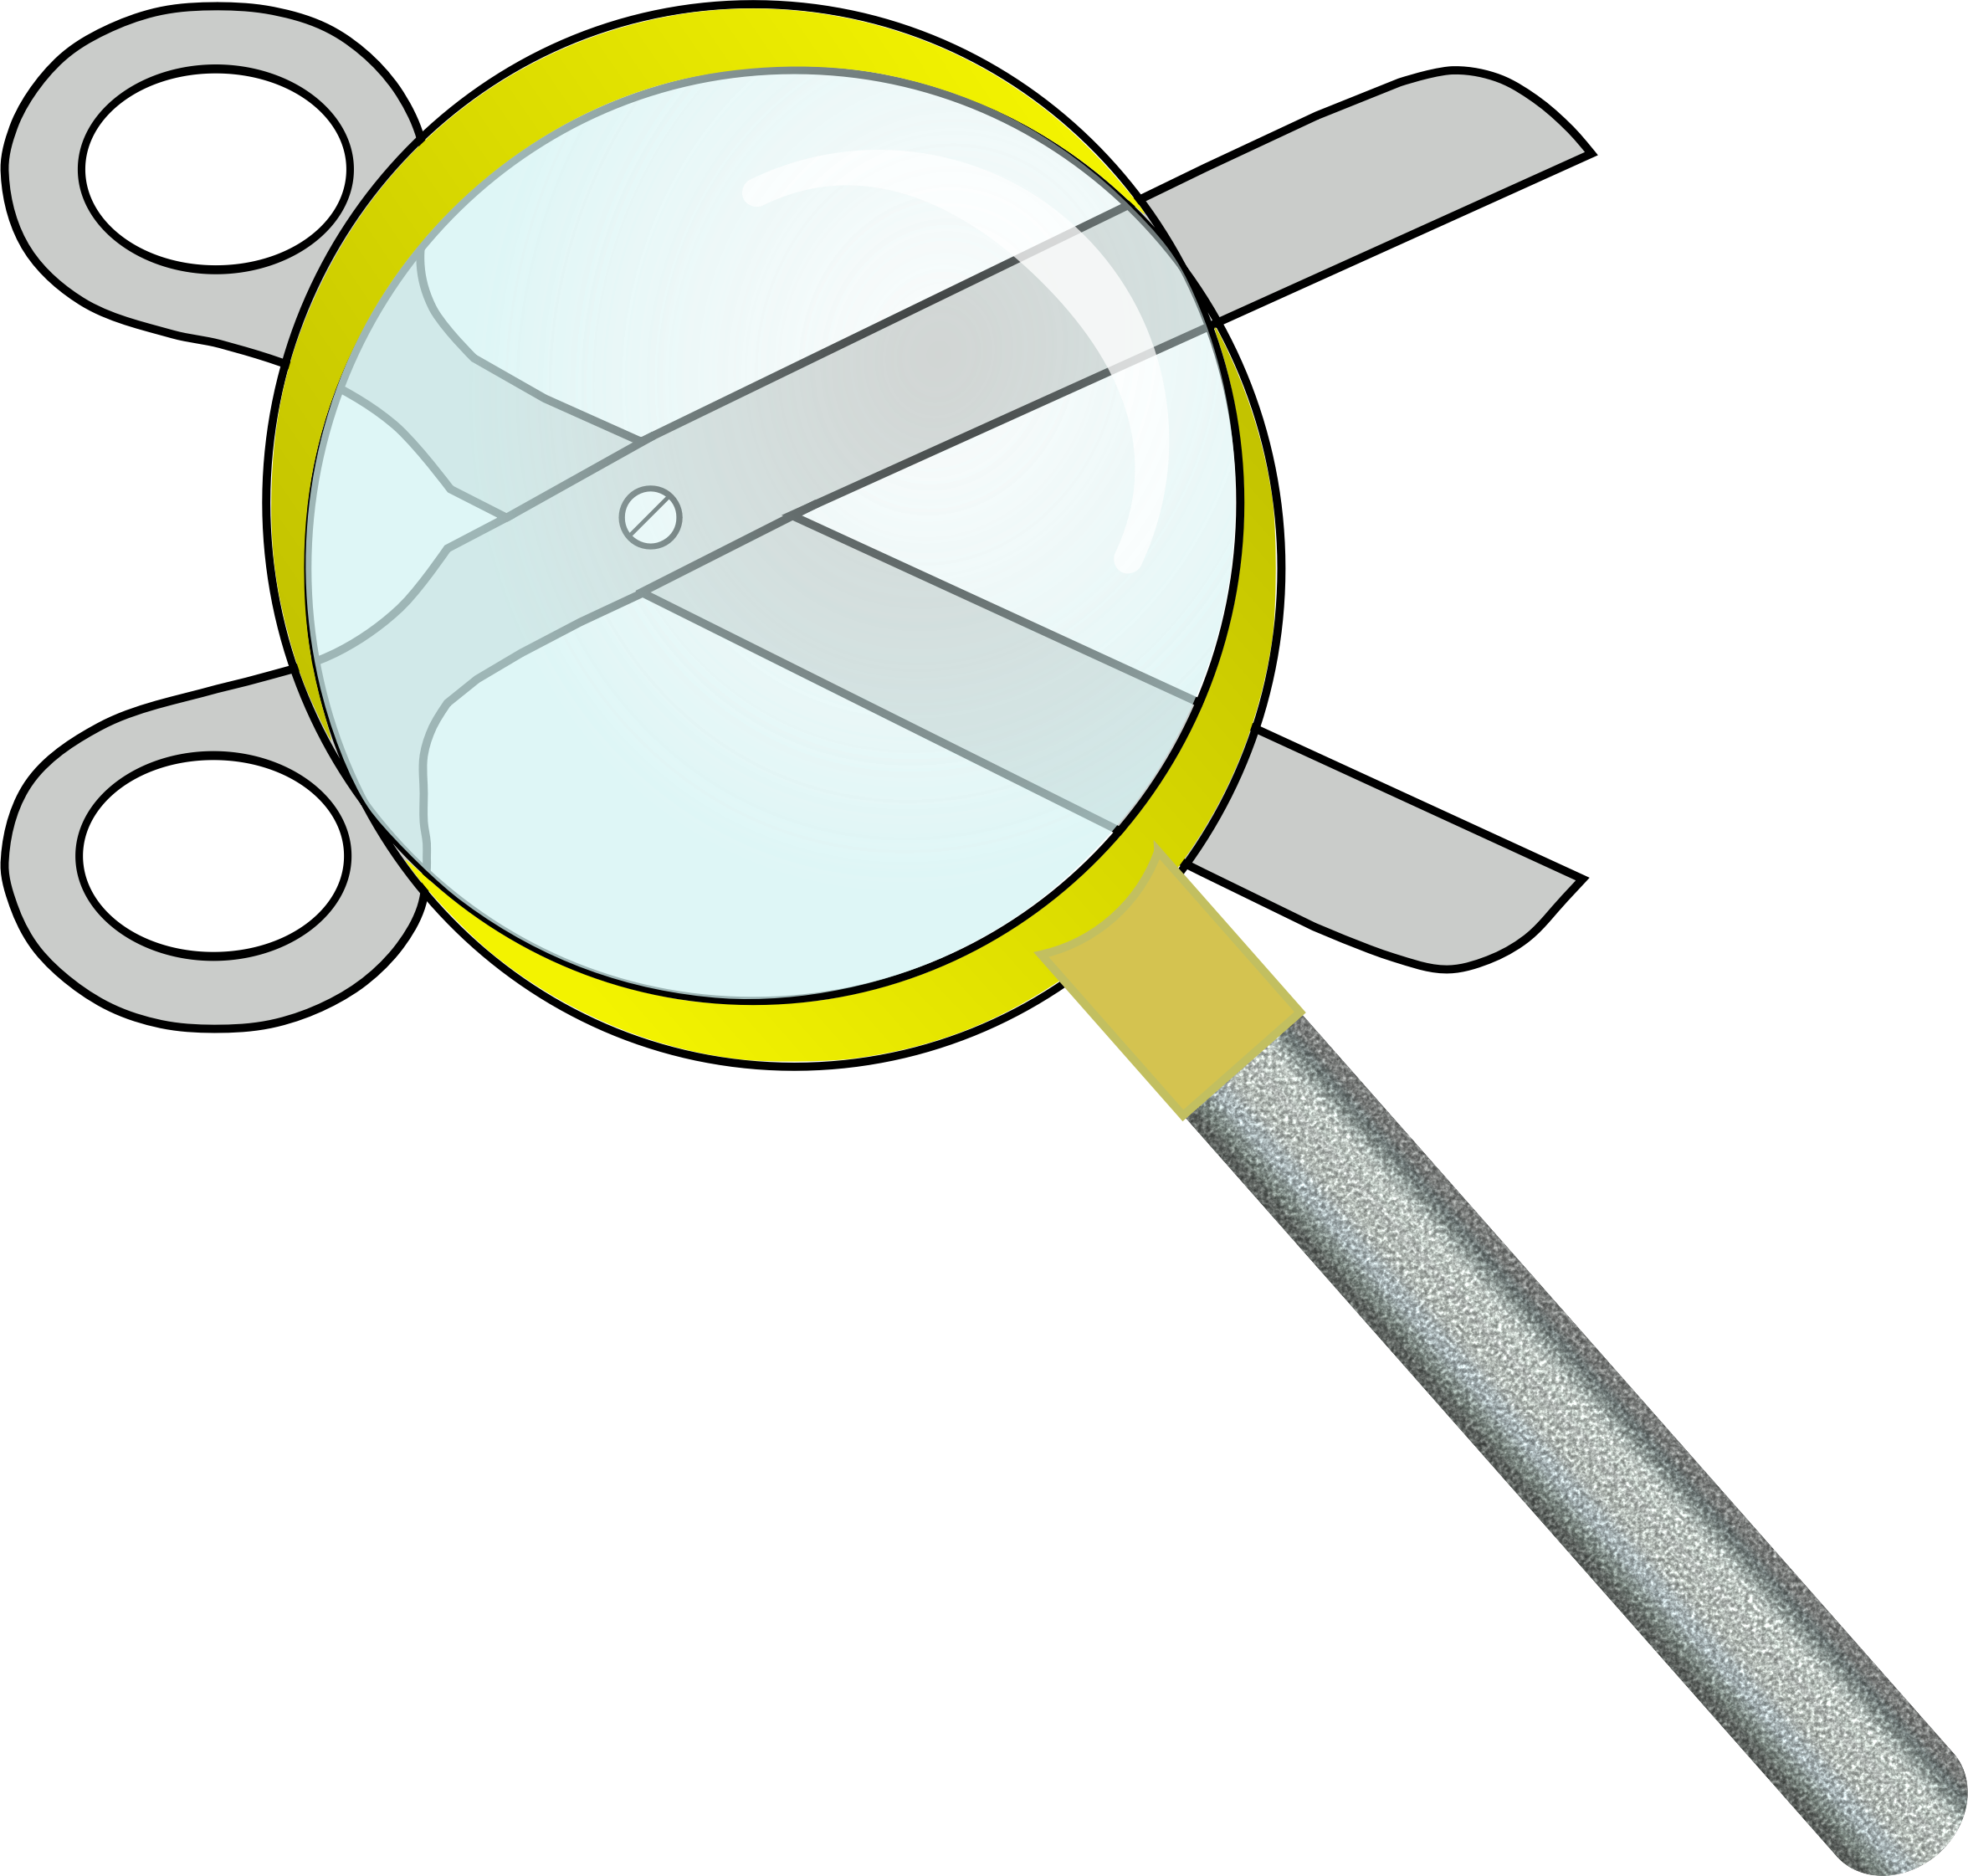 Free Search Cliparts, Download Free Clip Art, Free Clip Art on Clipart  Library